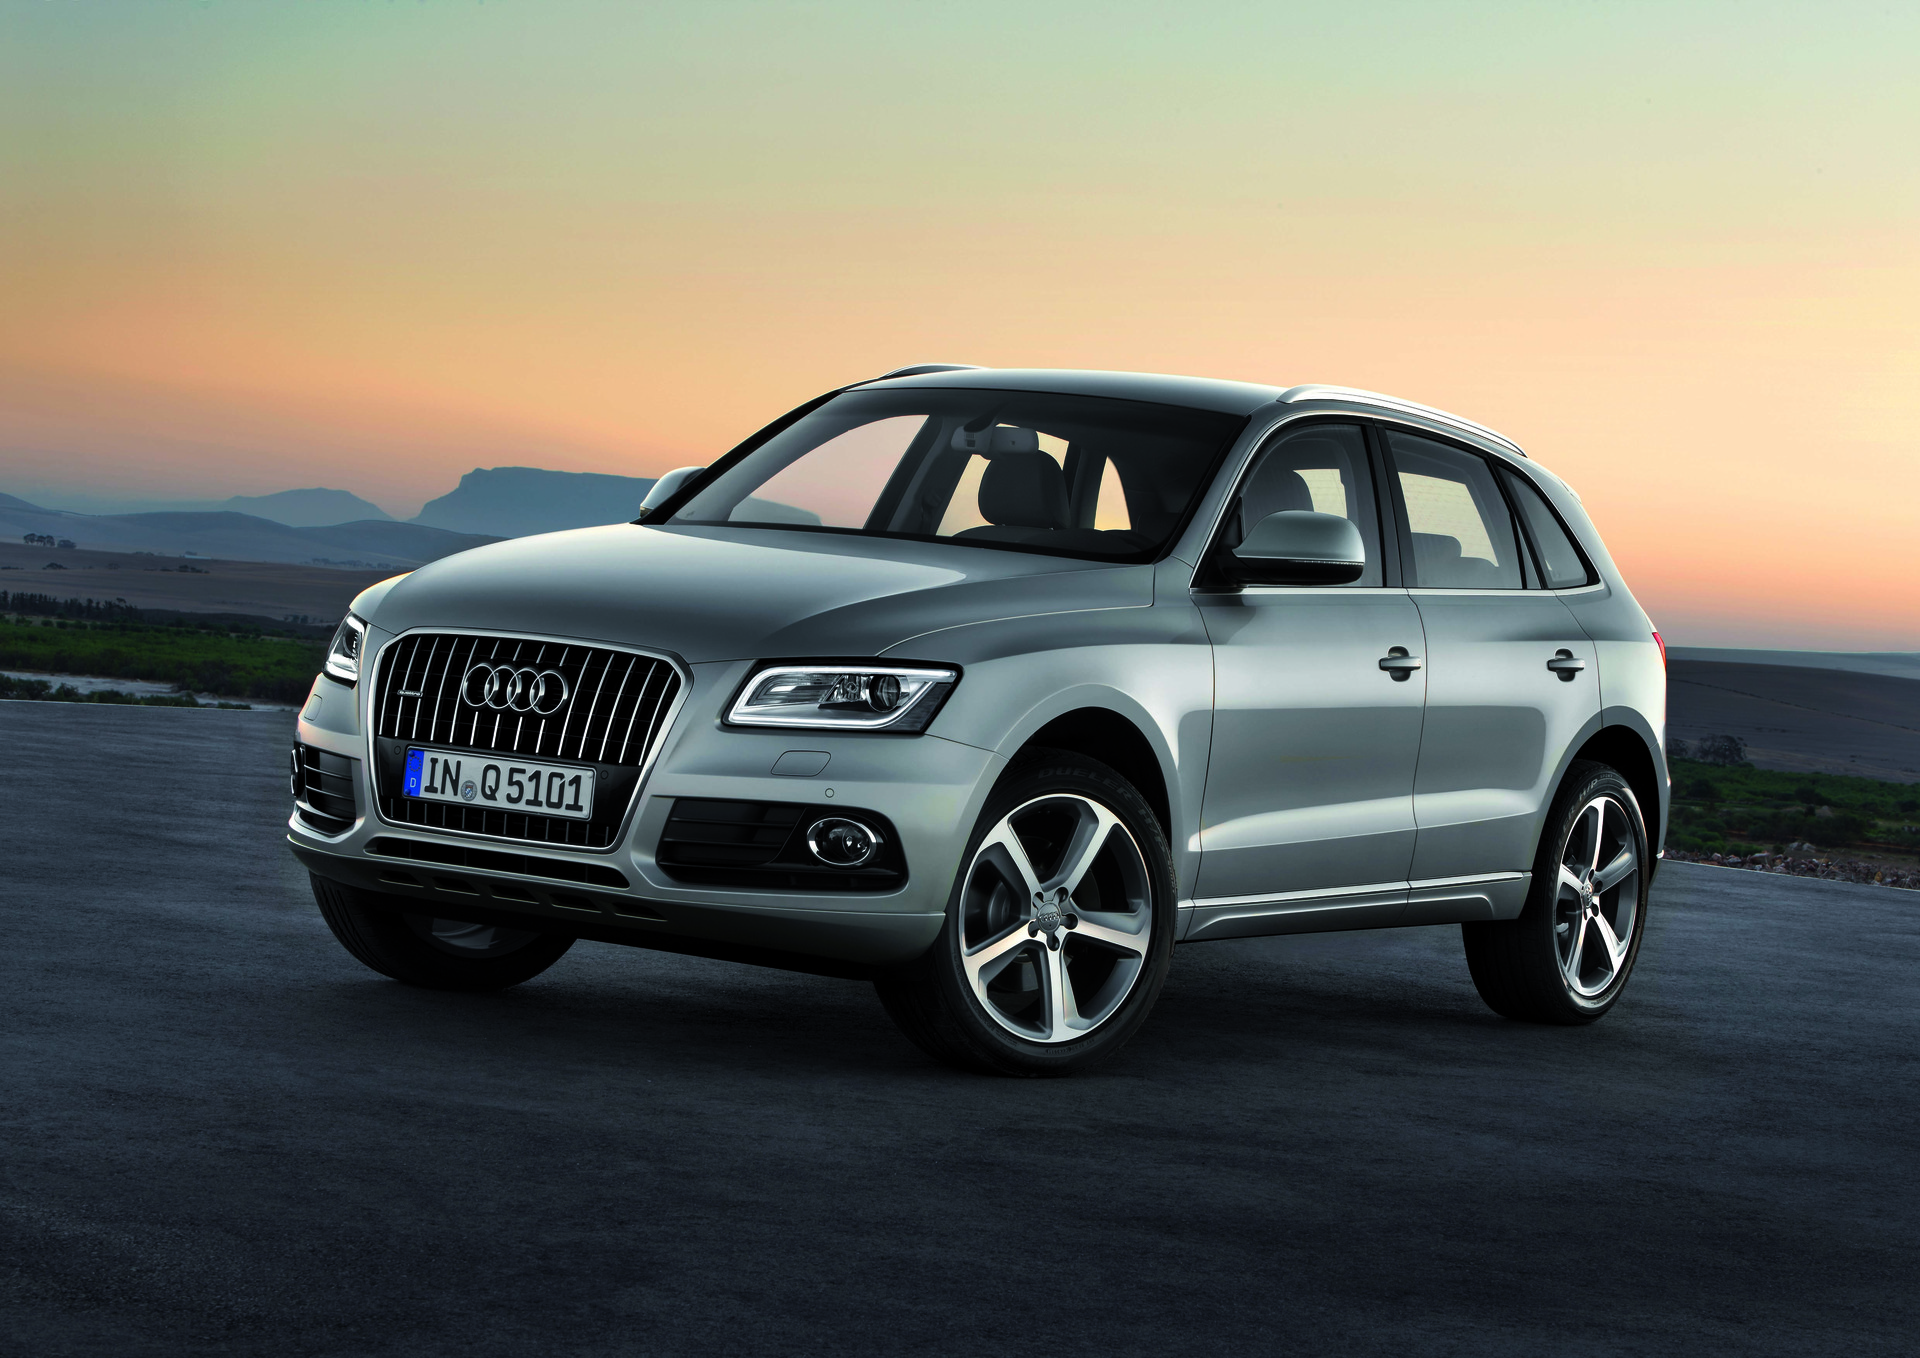 Nissan Fort Worth Used Cars 2016 Audi Q5 prices and expert review - The Car Connection